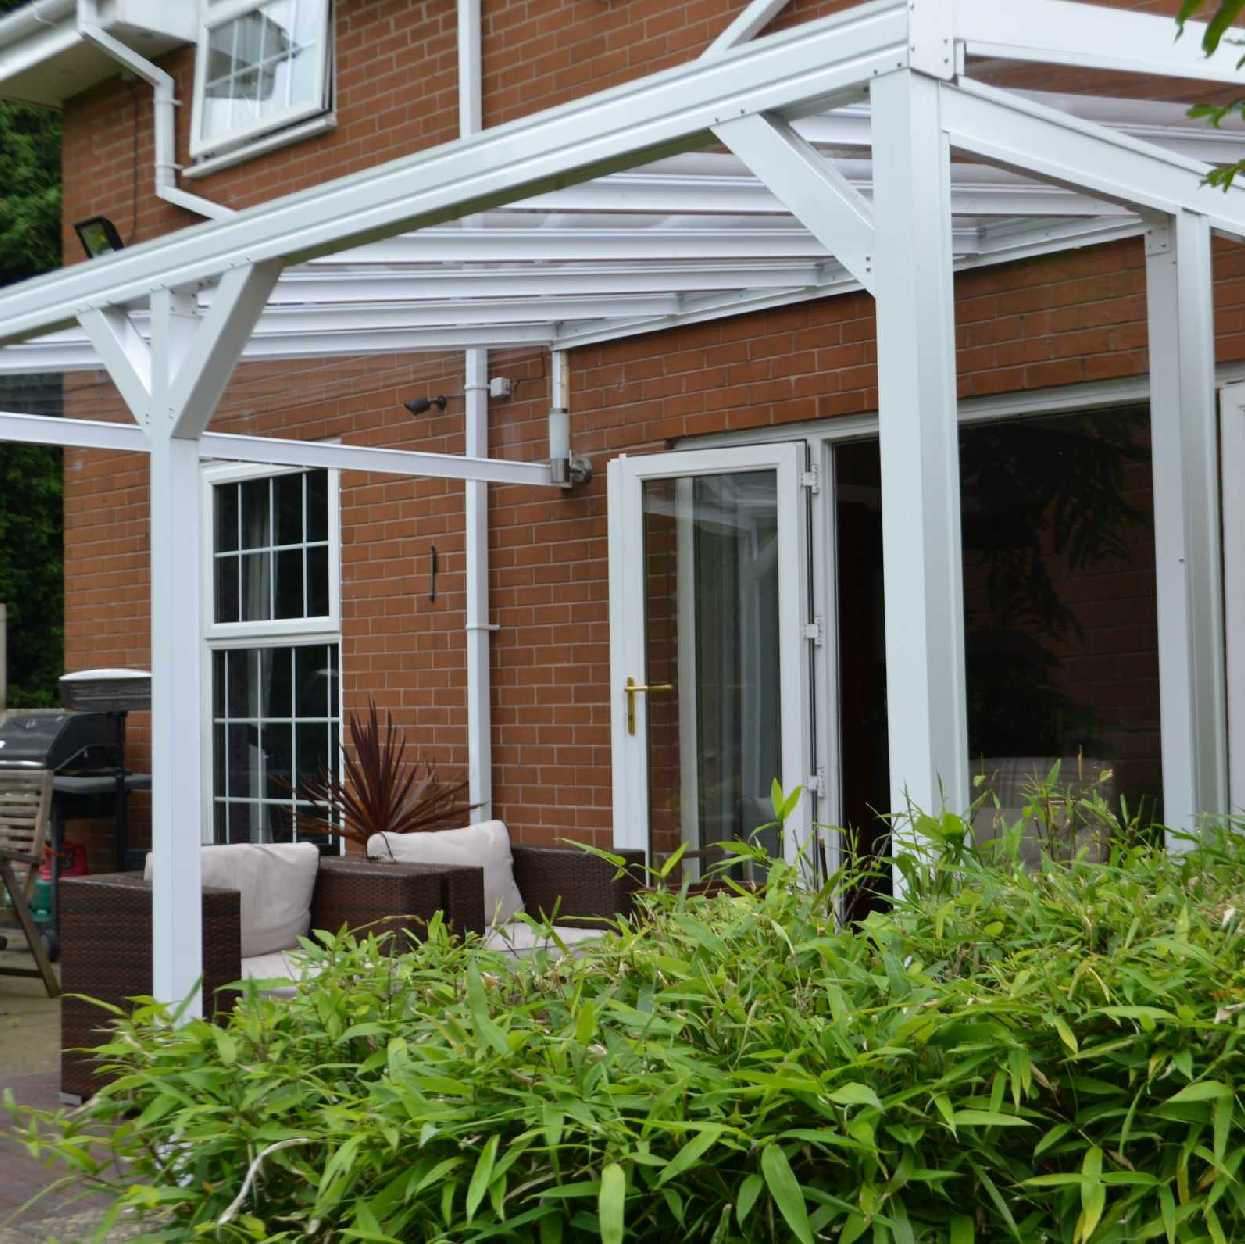 Omega Smart Lean-To Canopy with 6mm Glass Clear Plate Polycarbonate Glazing - 10.5m (W) x 2.0m (P), (5) Supporting Posts from Omega Build